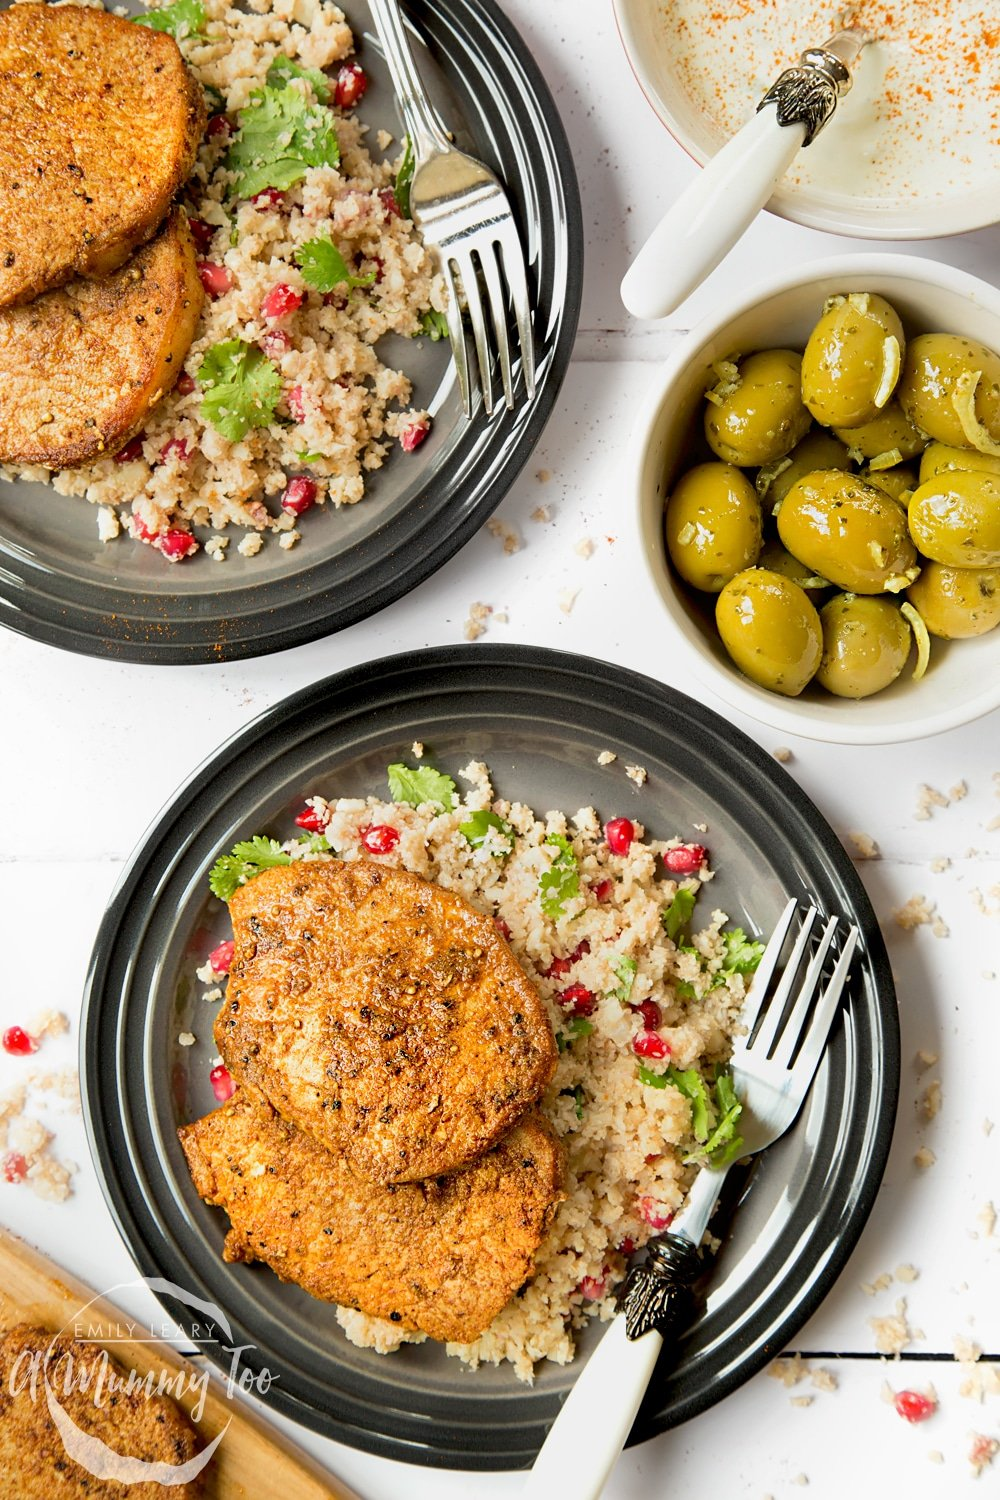 These spiced pork medallions with pomegranate jewelled cauliflower 'couscous' are a deliciously healthy way to enjoy pork, with a creative 'couscous' side